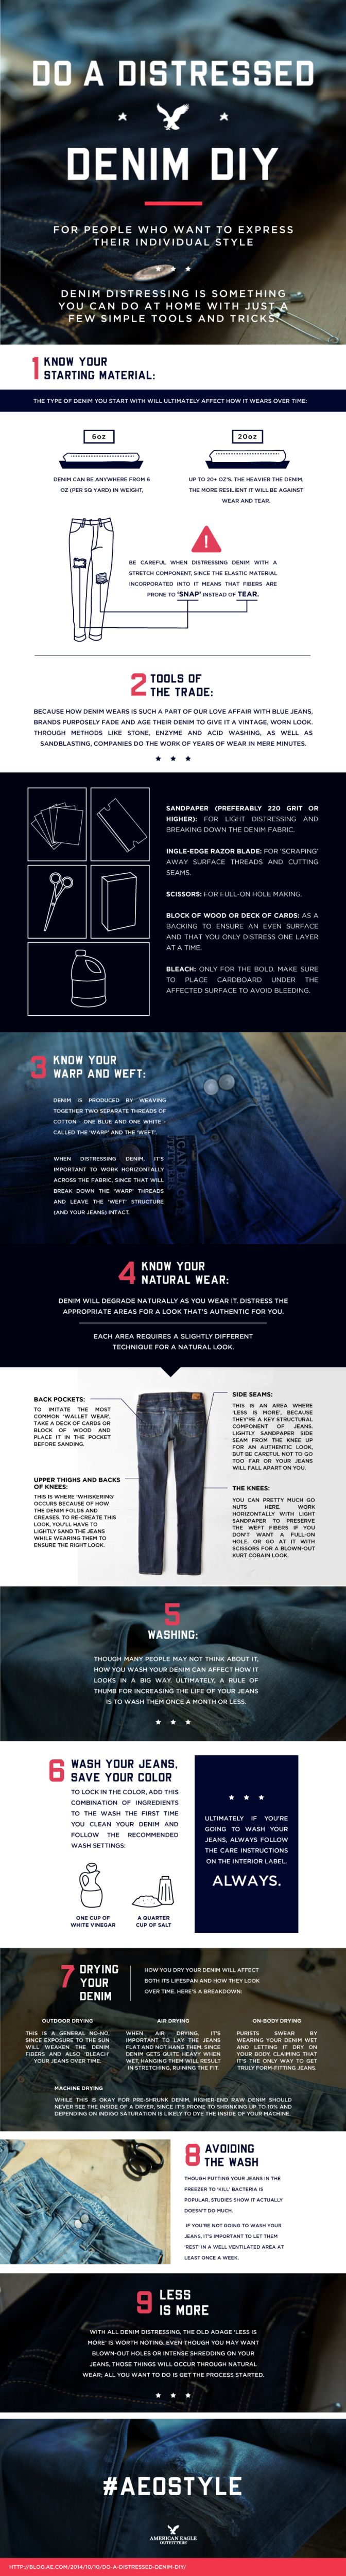 Do A Distressed Denim DIY - Jean Hacks Infographic